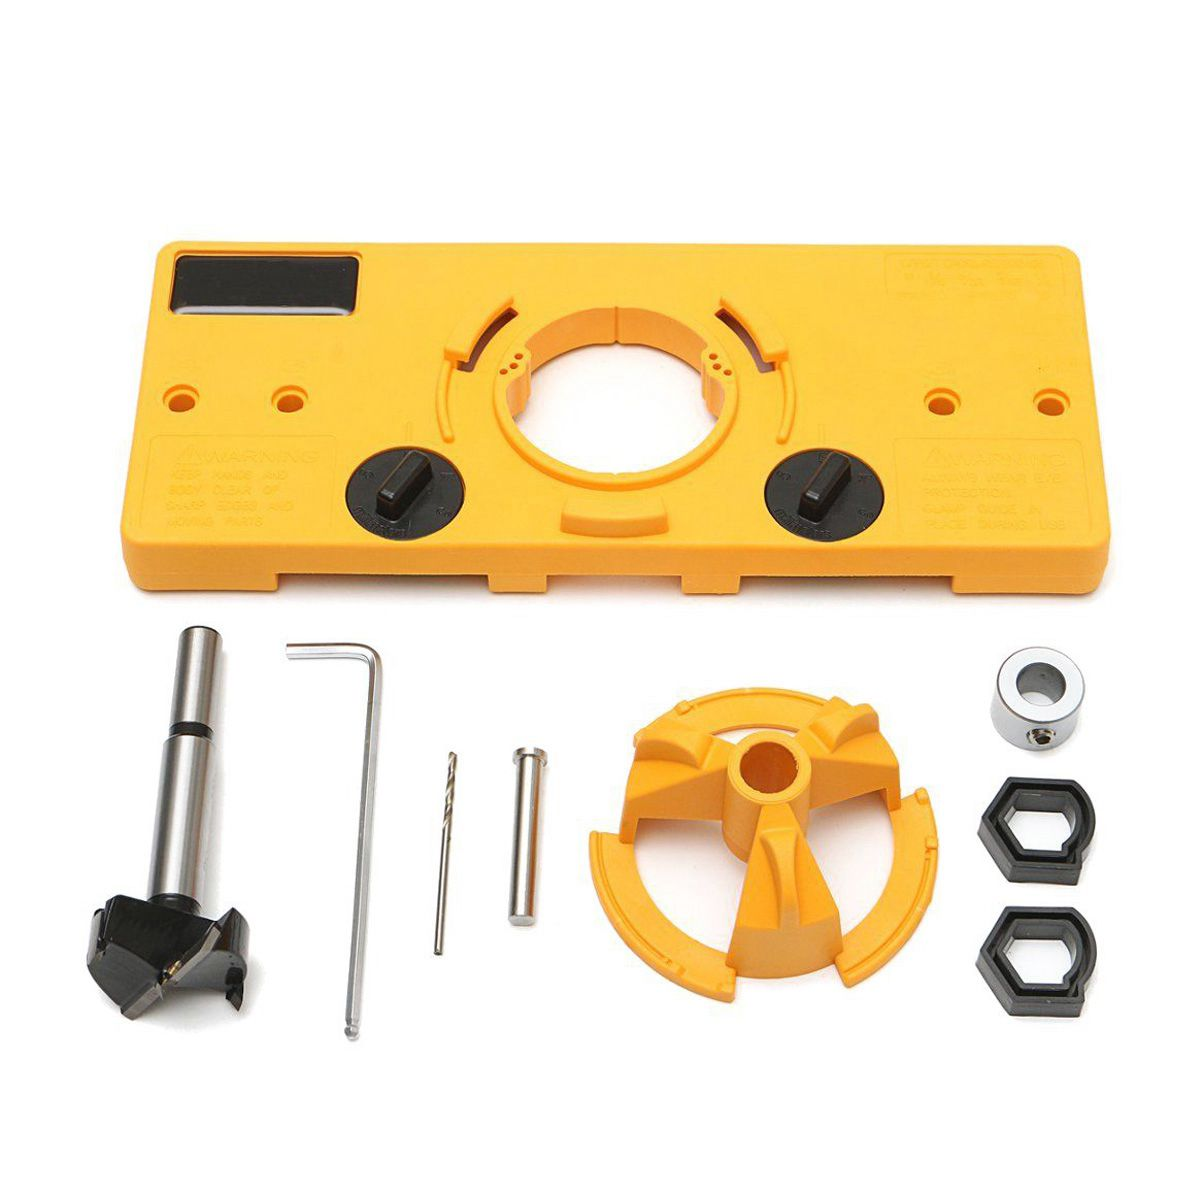 35MM Cup Style Hinge Boring Jig Drill Guide Set Door Hole Template For Kreg Tool Hole Locator Limit Ring Hole Knife Wrench Tools 35mm cup style hinge drill bit boring guide door hole drill locator jig drill guide for kreg tools diy woodworking drill tool